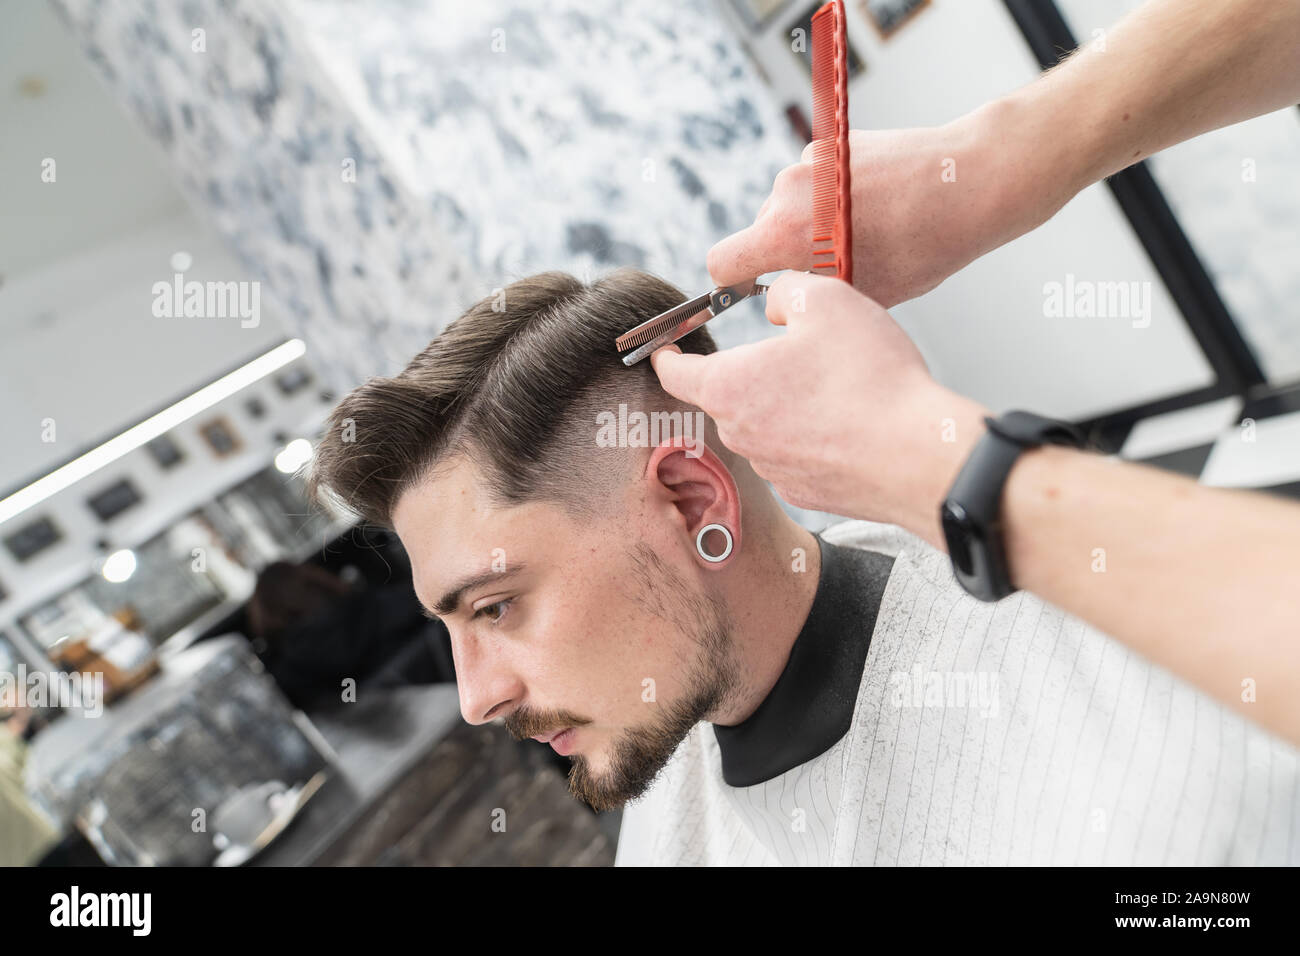 Haircut In A Hairdresser New Haircut Style Stock Photo Alamy